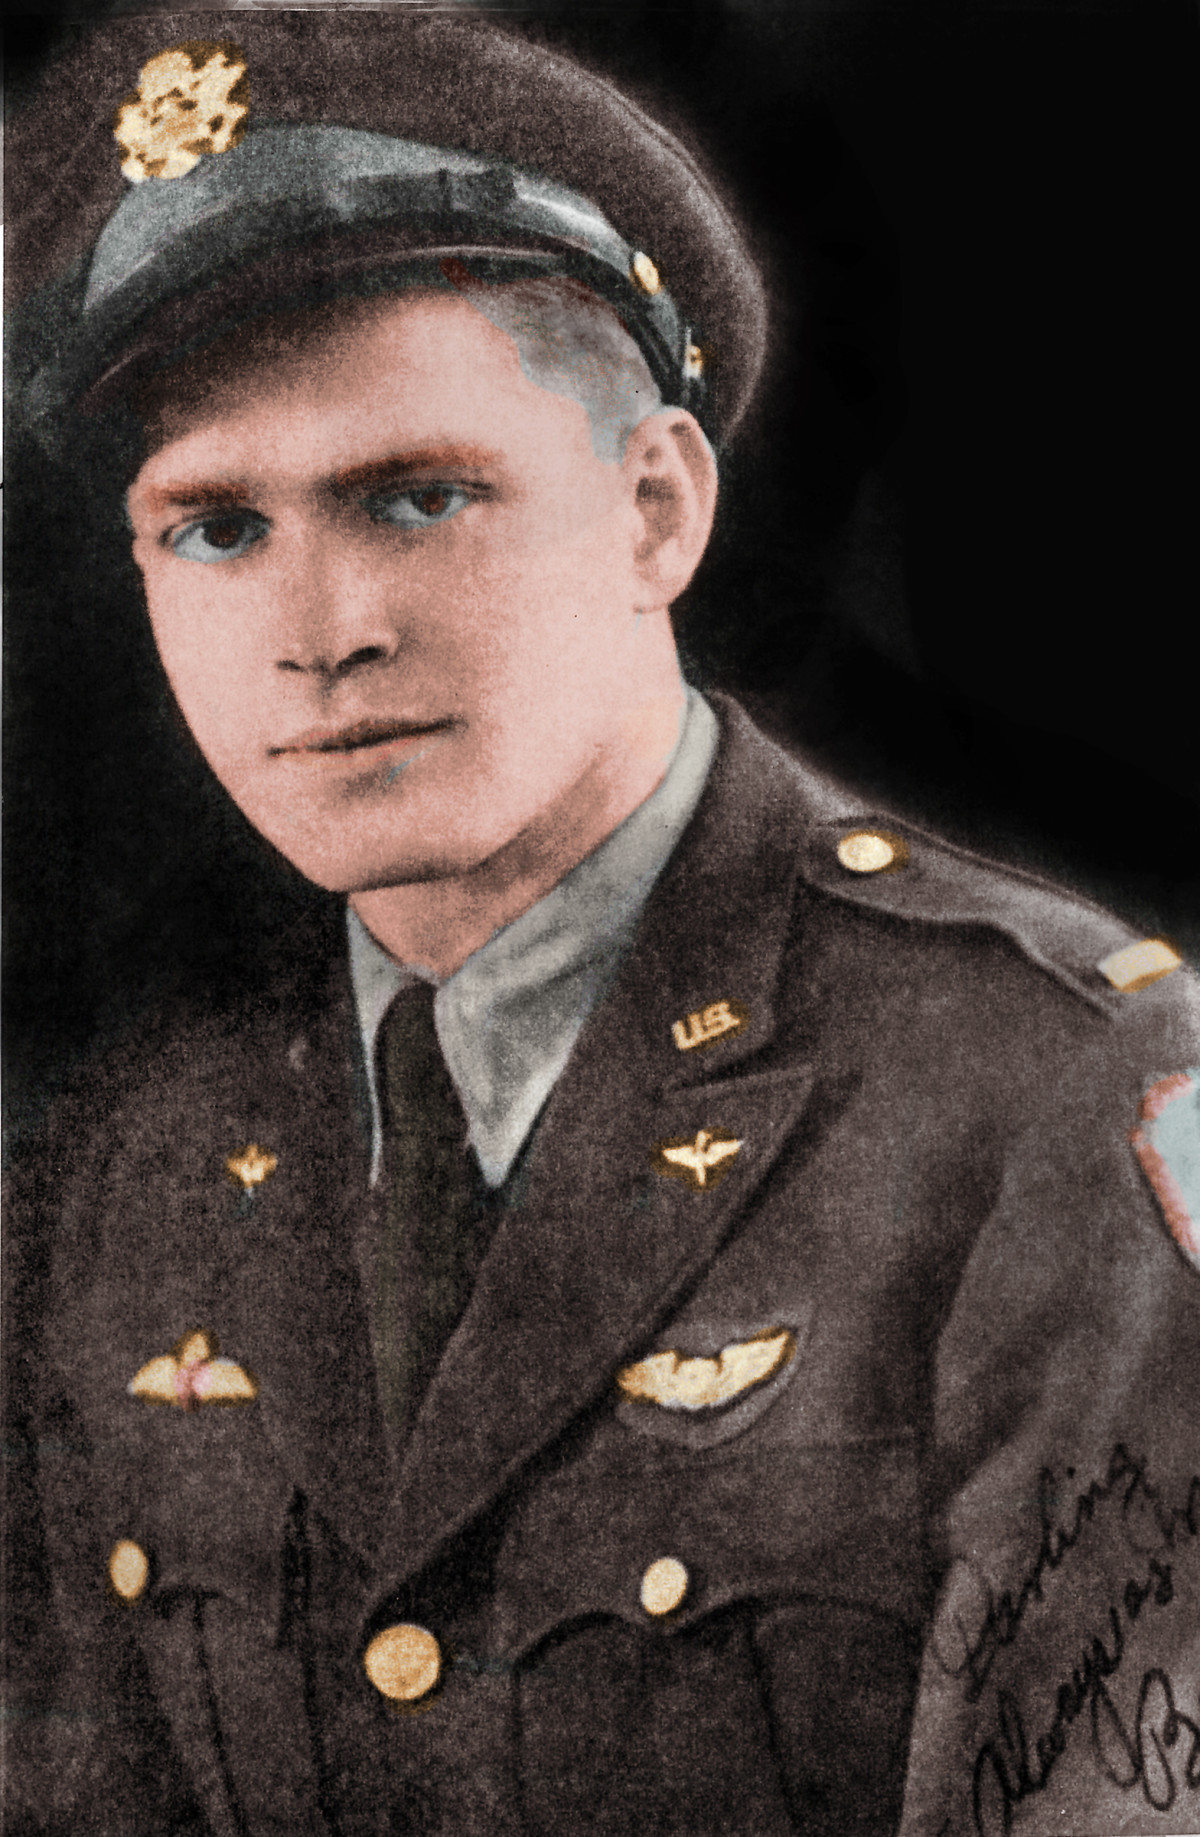 In this colorized photo, Lt. Young is in uniform. Note both RCAF and USAAC insignia.